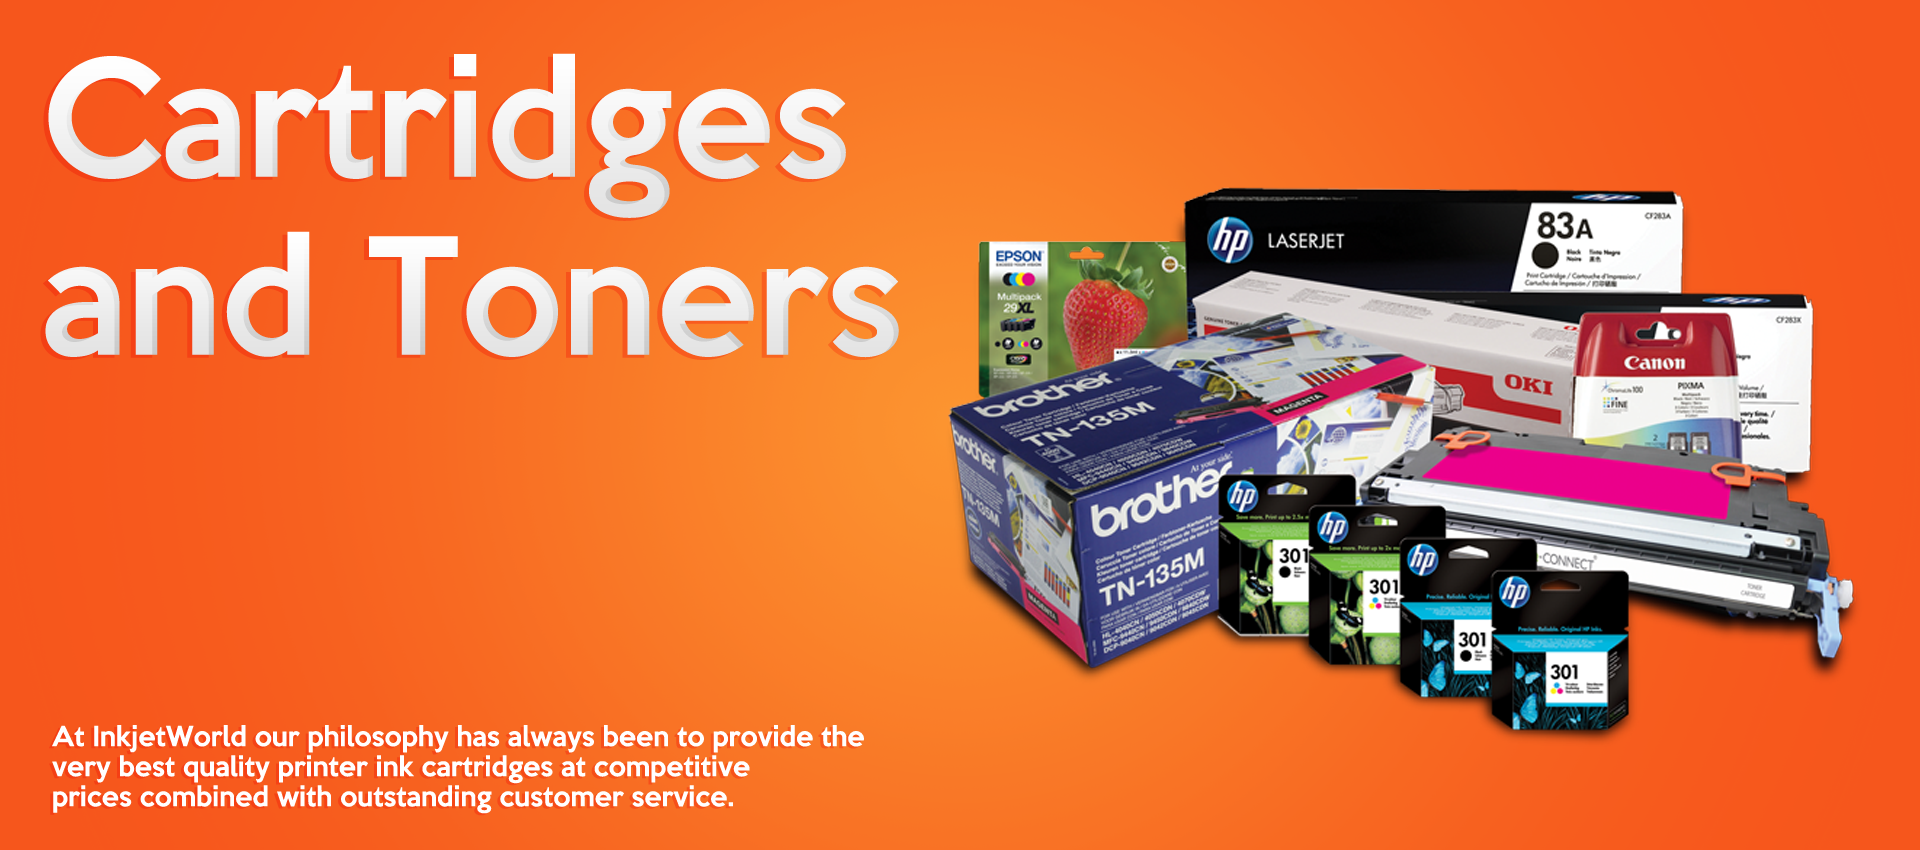 Cartridges and Toners Banner